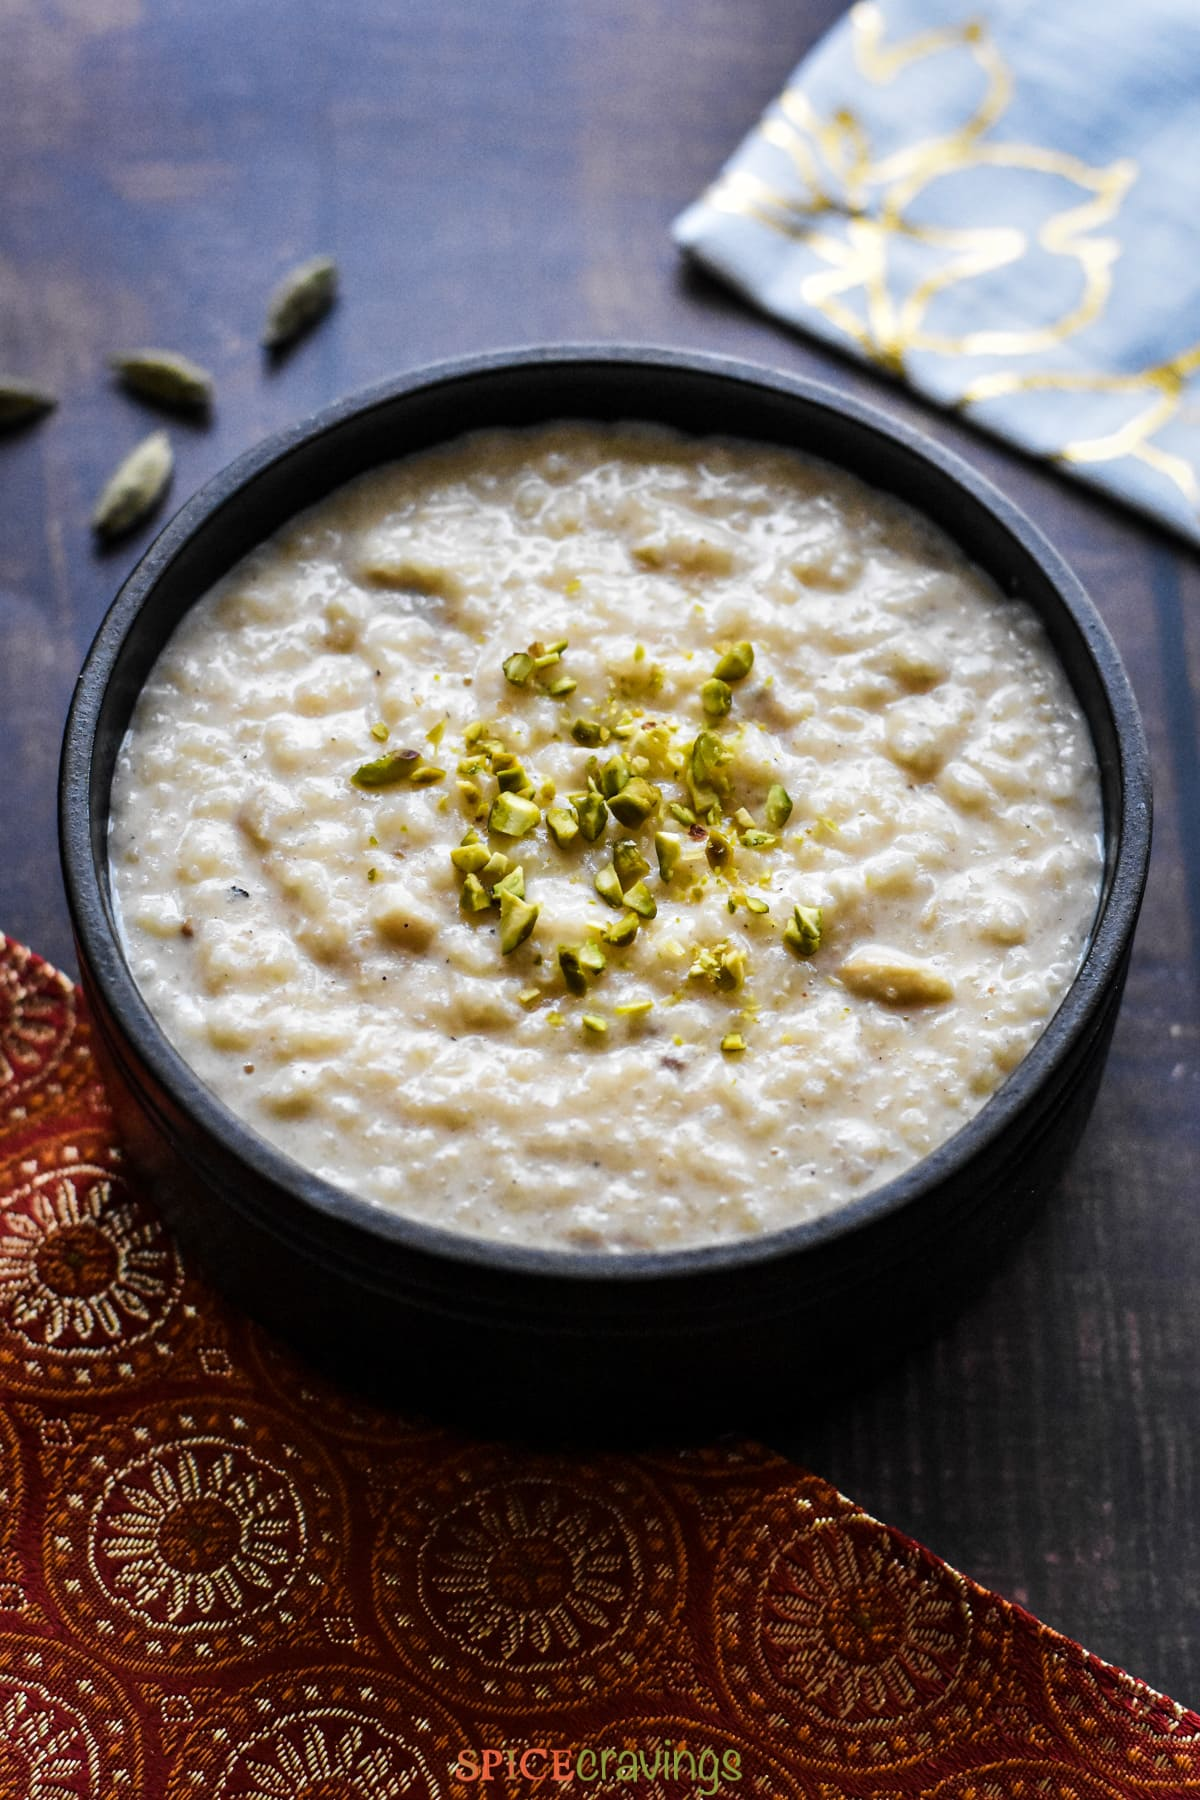 Kheer, Indian rice pudding, served in a black stone bowl, garnished with pistachios